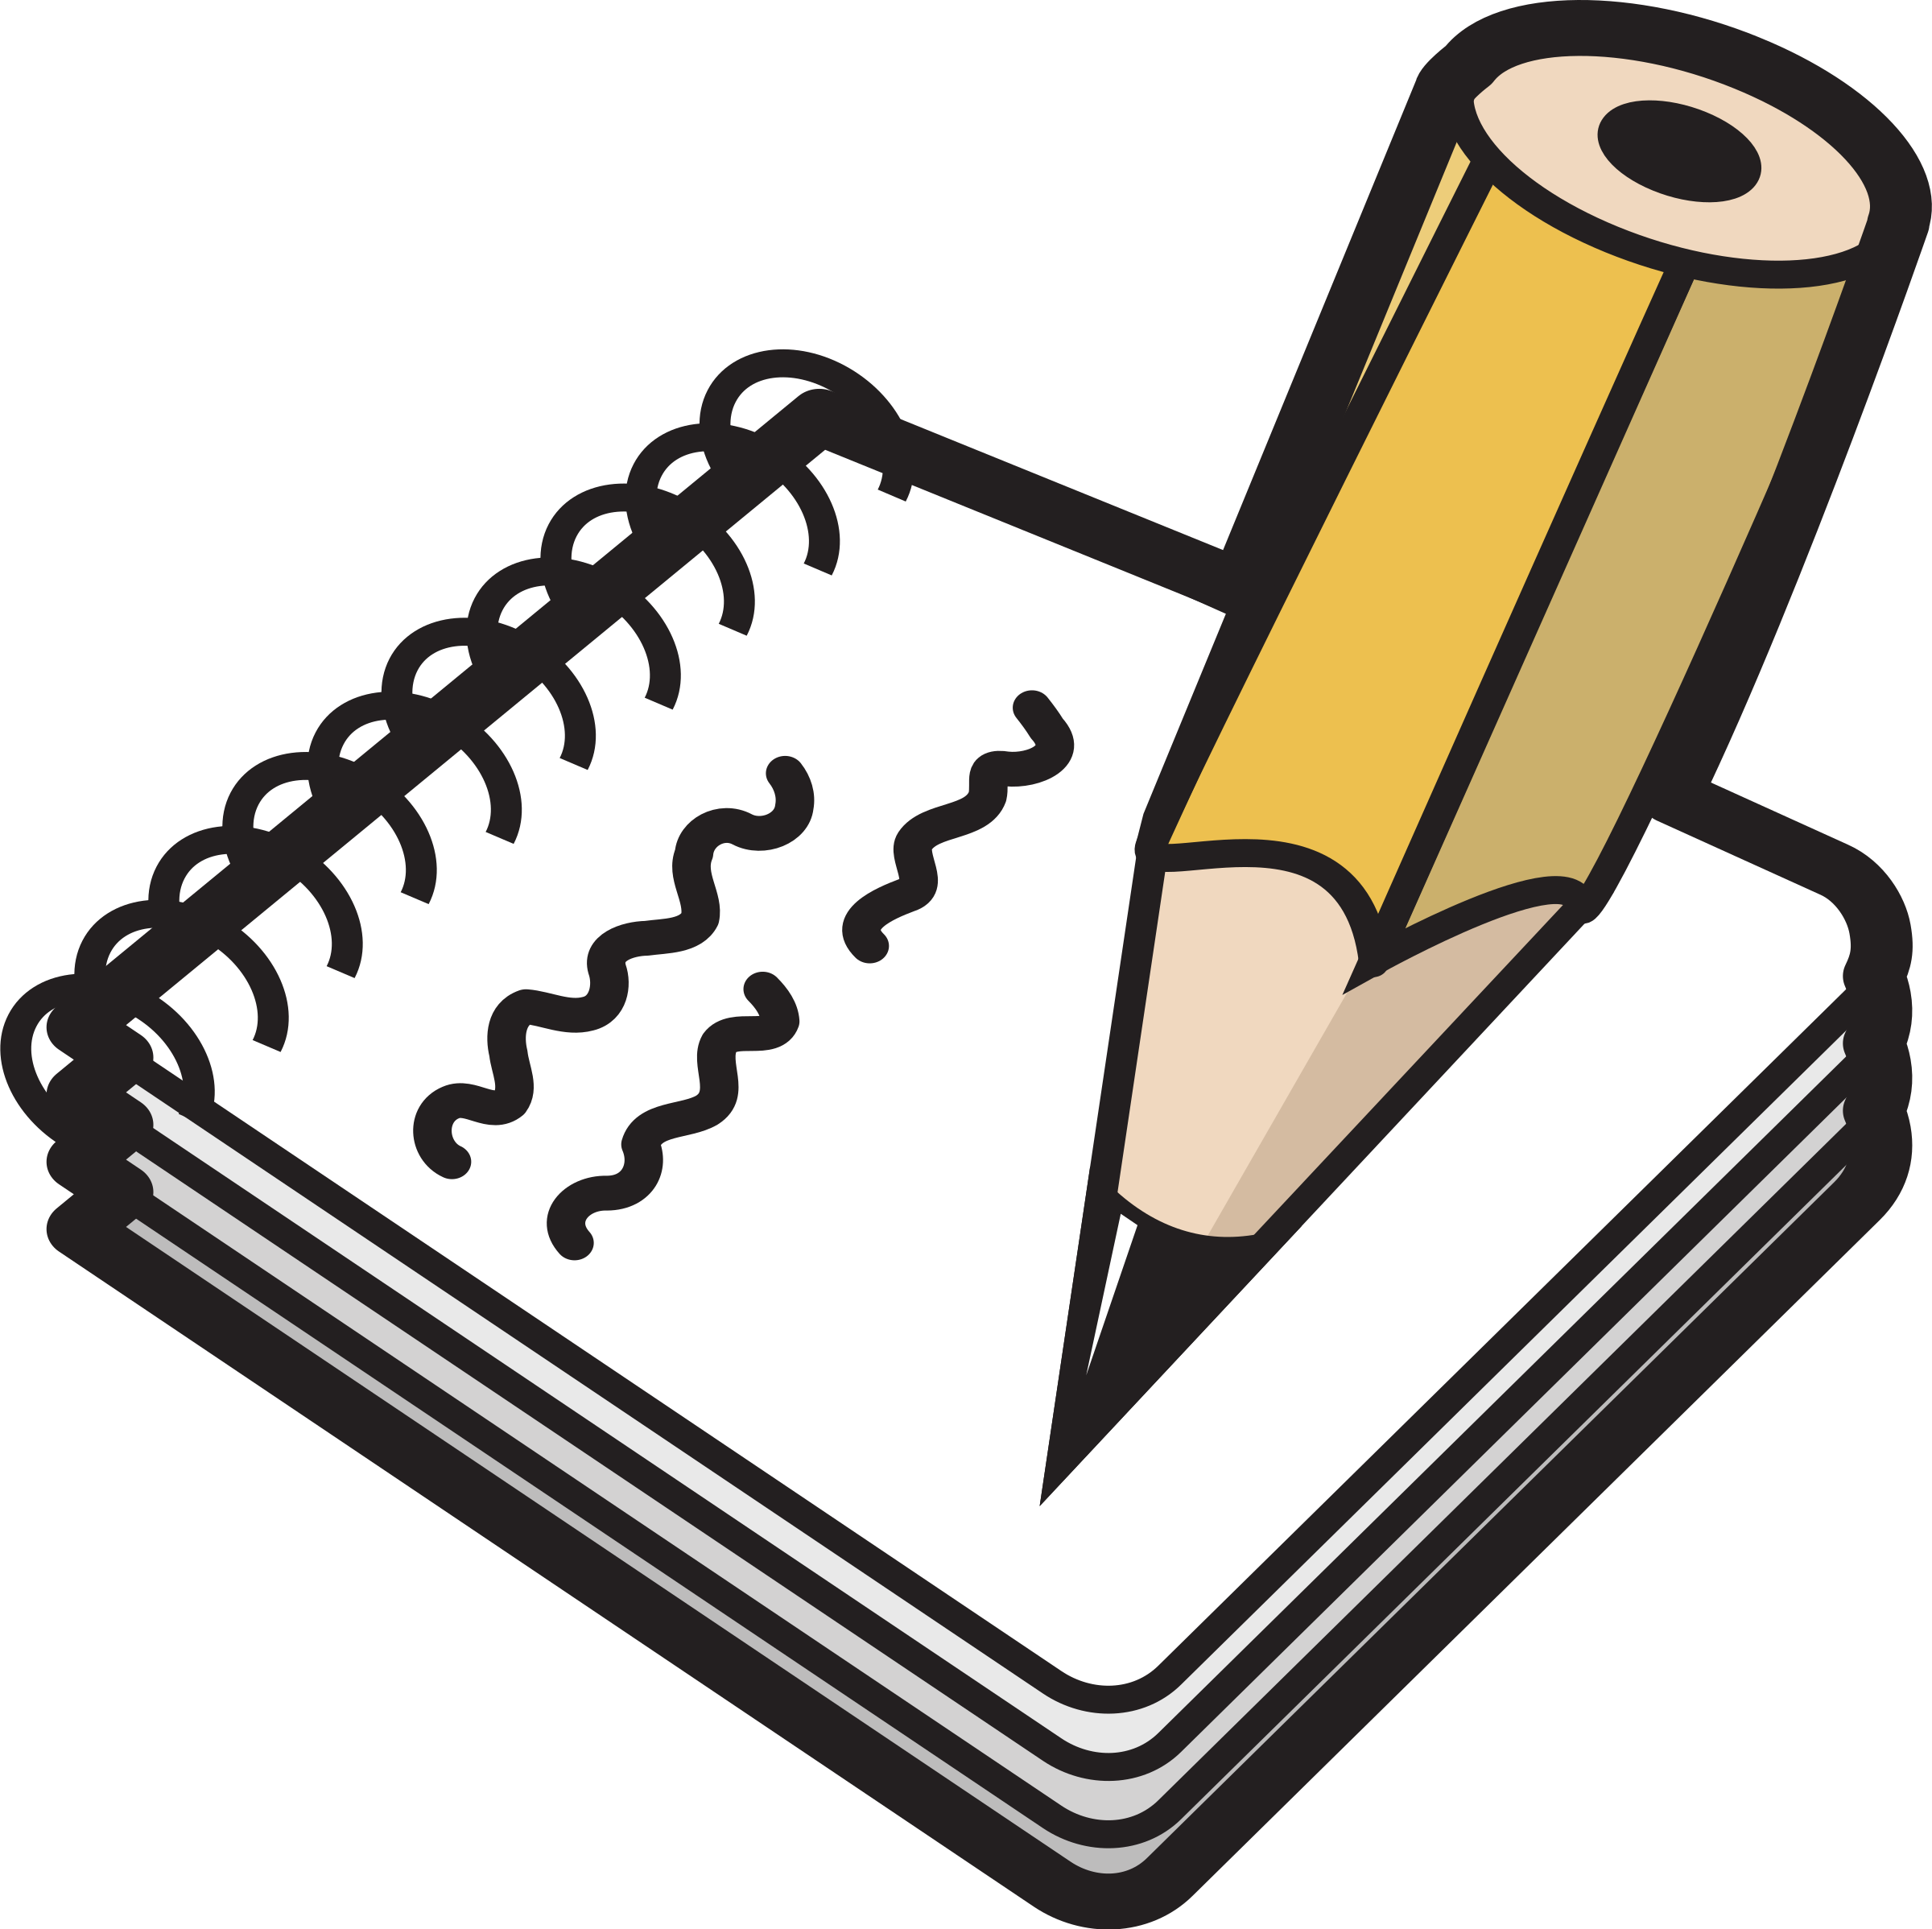 Pad clipart letter pad. Notepad for free download